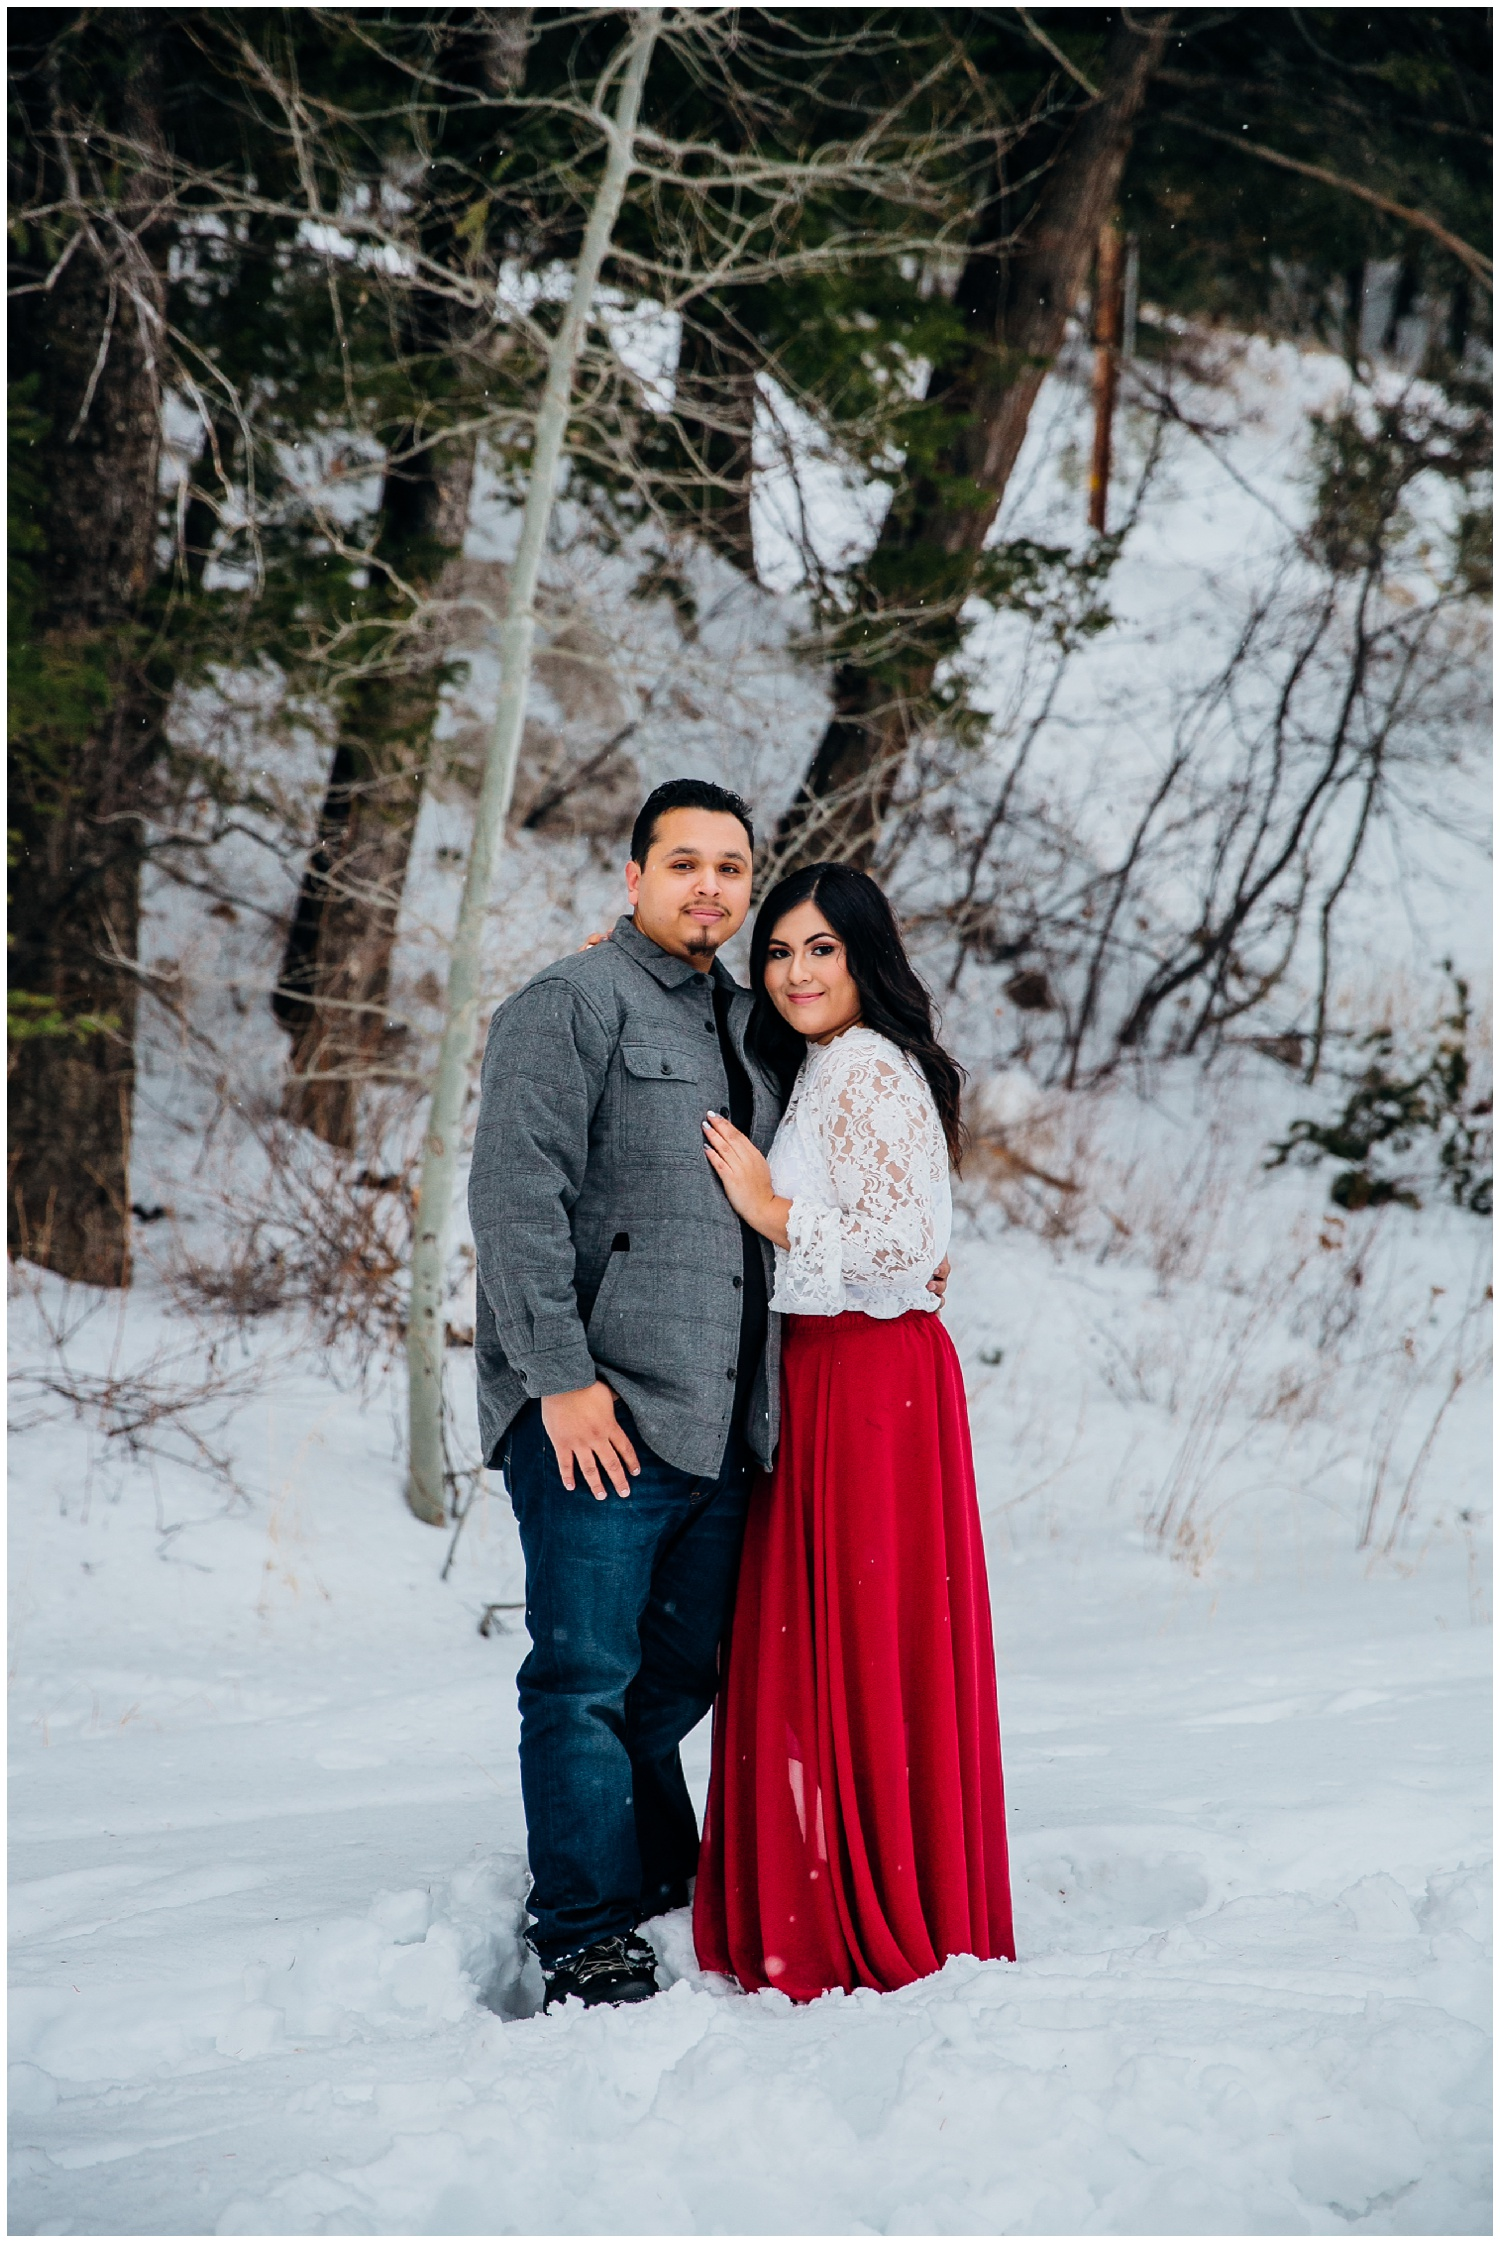 jackson-grand-teton-engagement-wedding-photographer-wyoming-idaho-wedding-photographer_1853.jpg